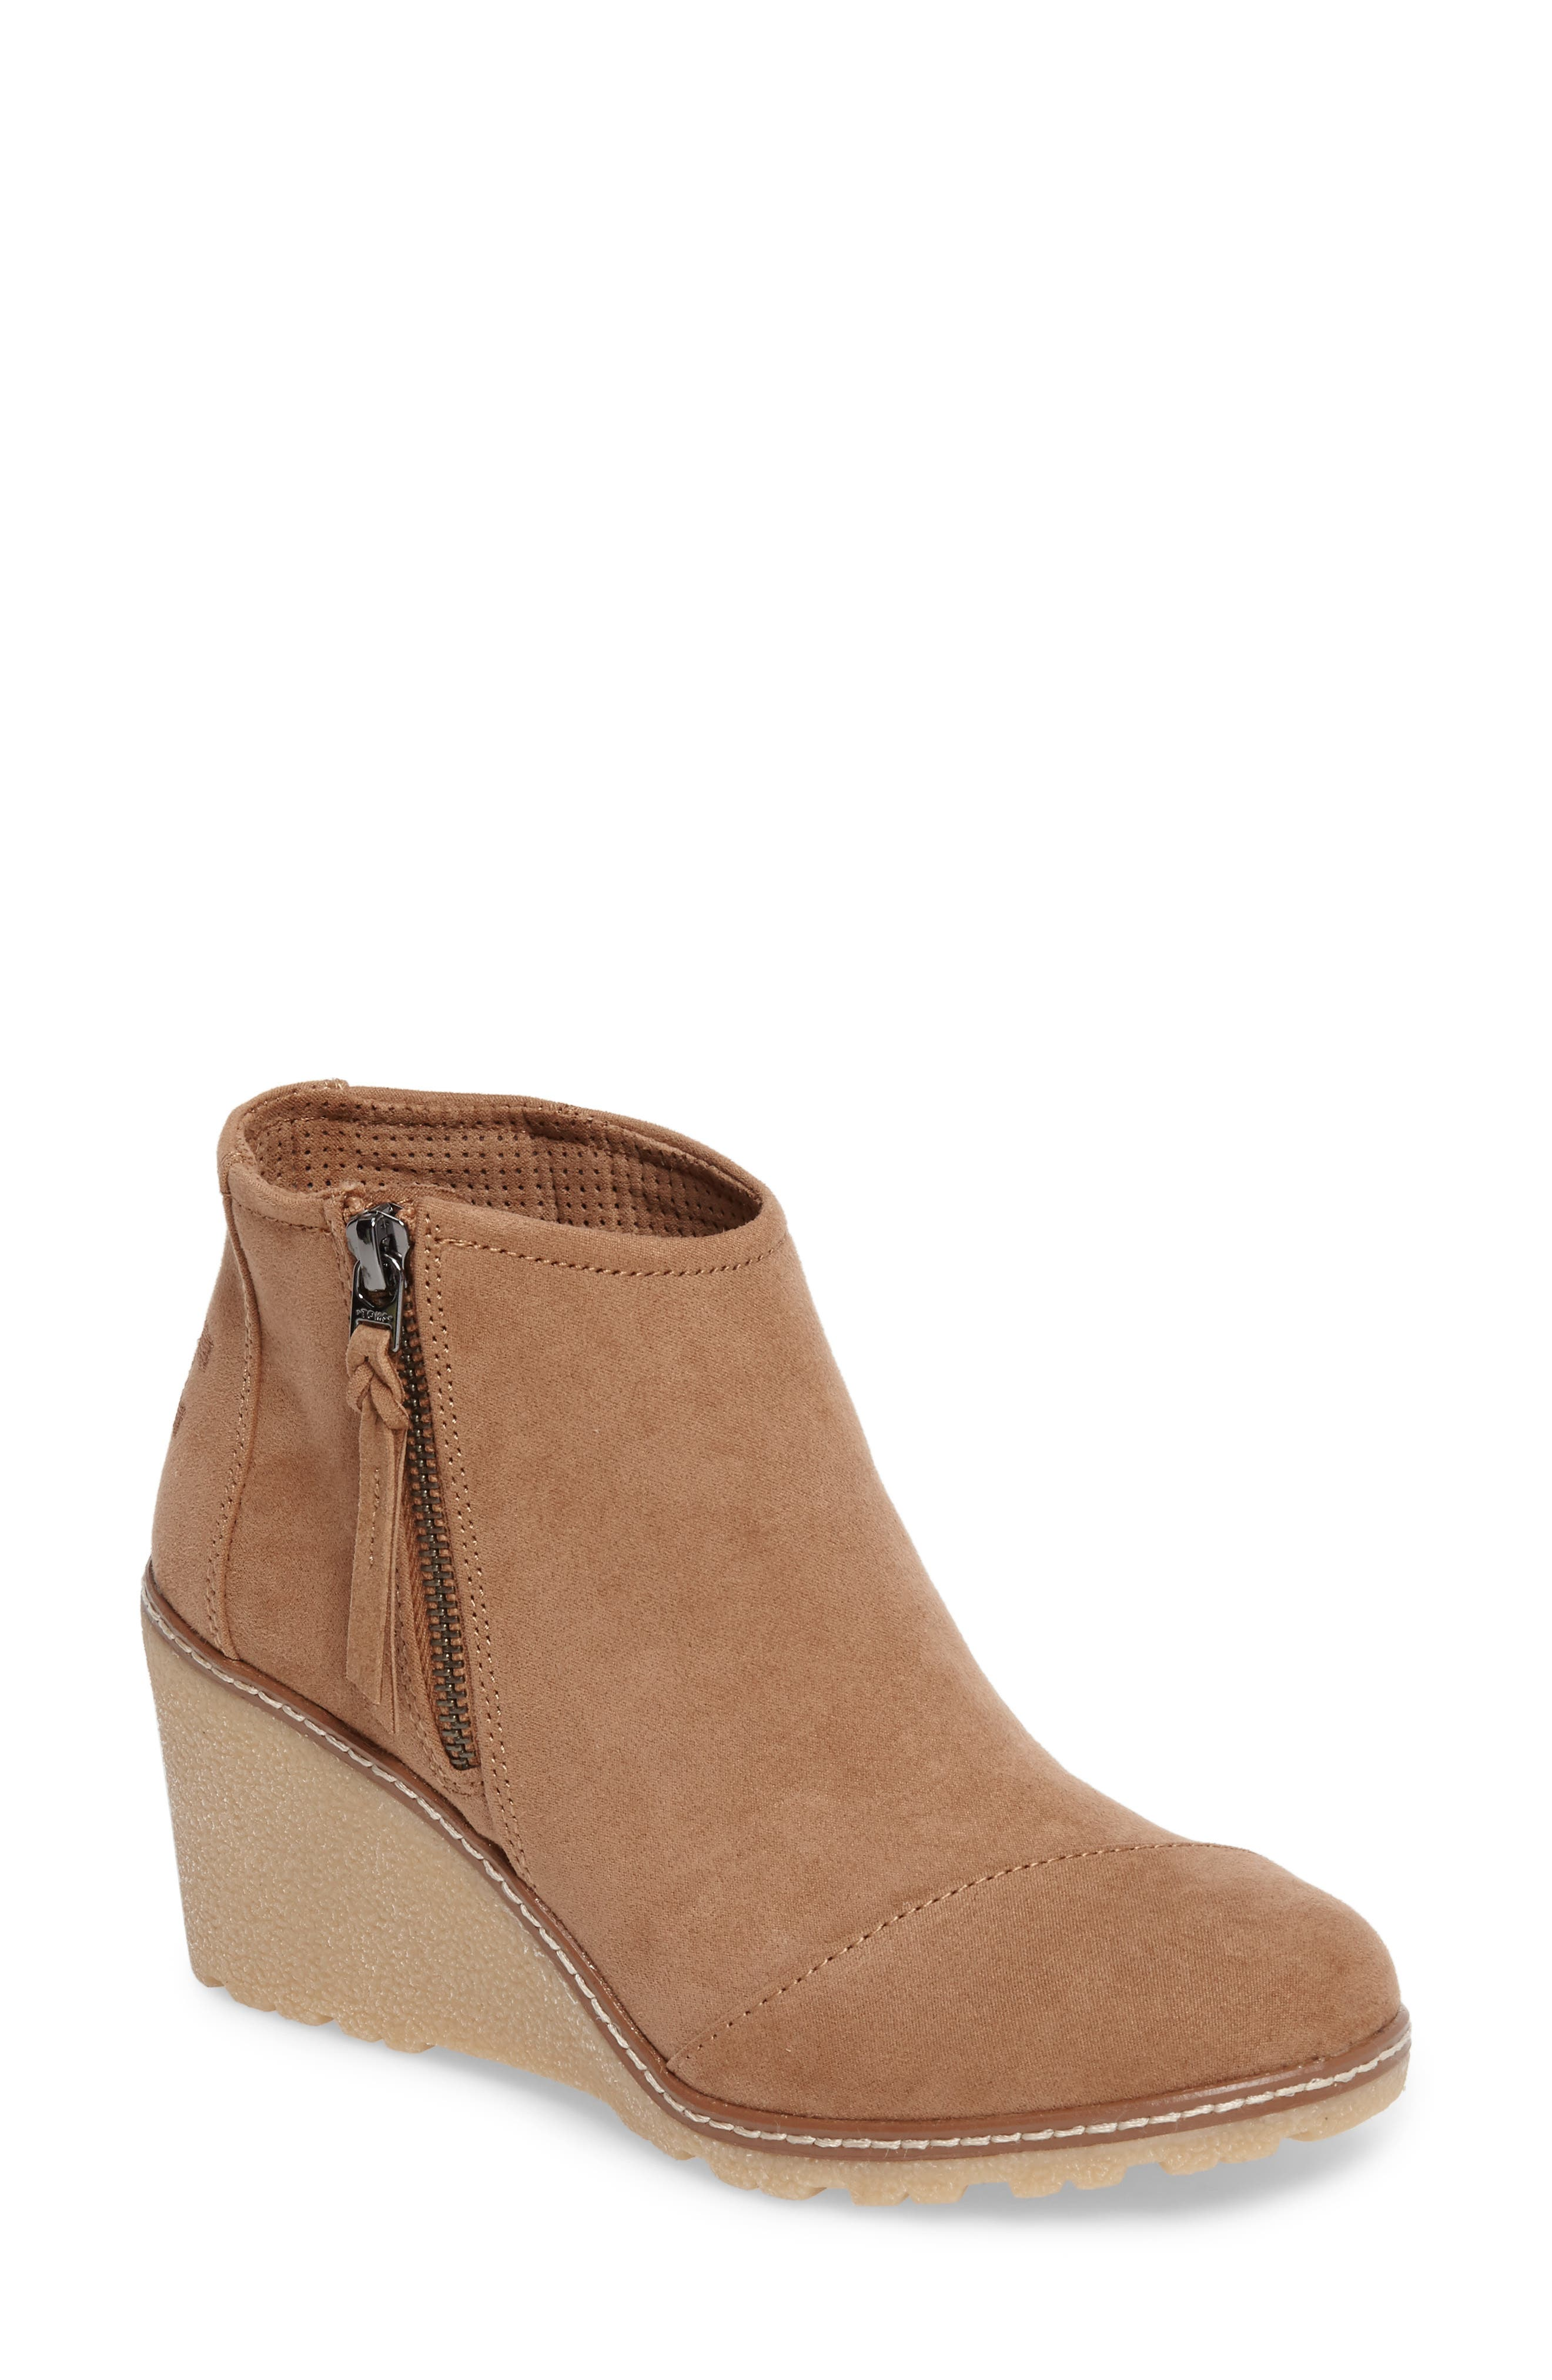 Avery Wedge Bootie,                             Main thumbnail 3, color,